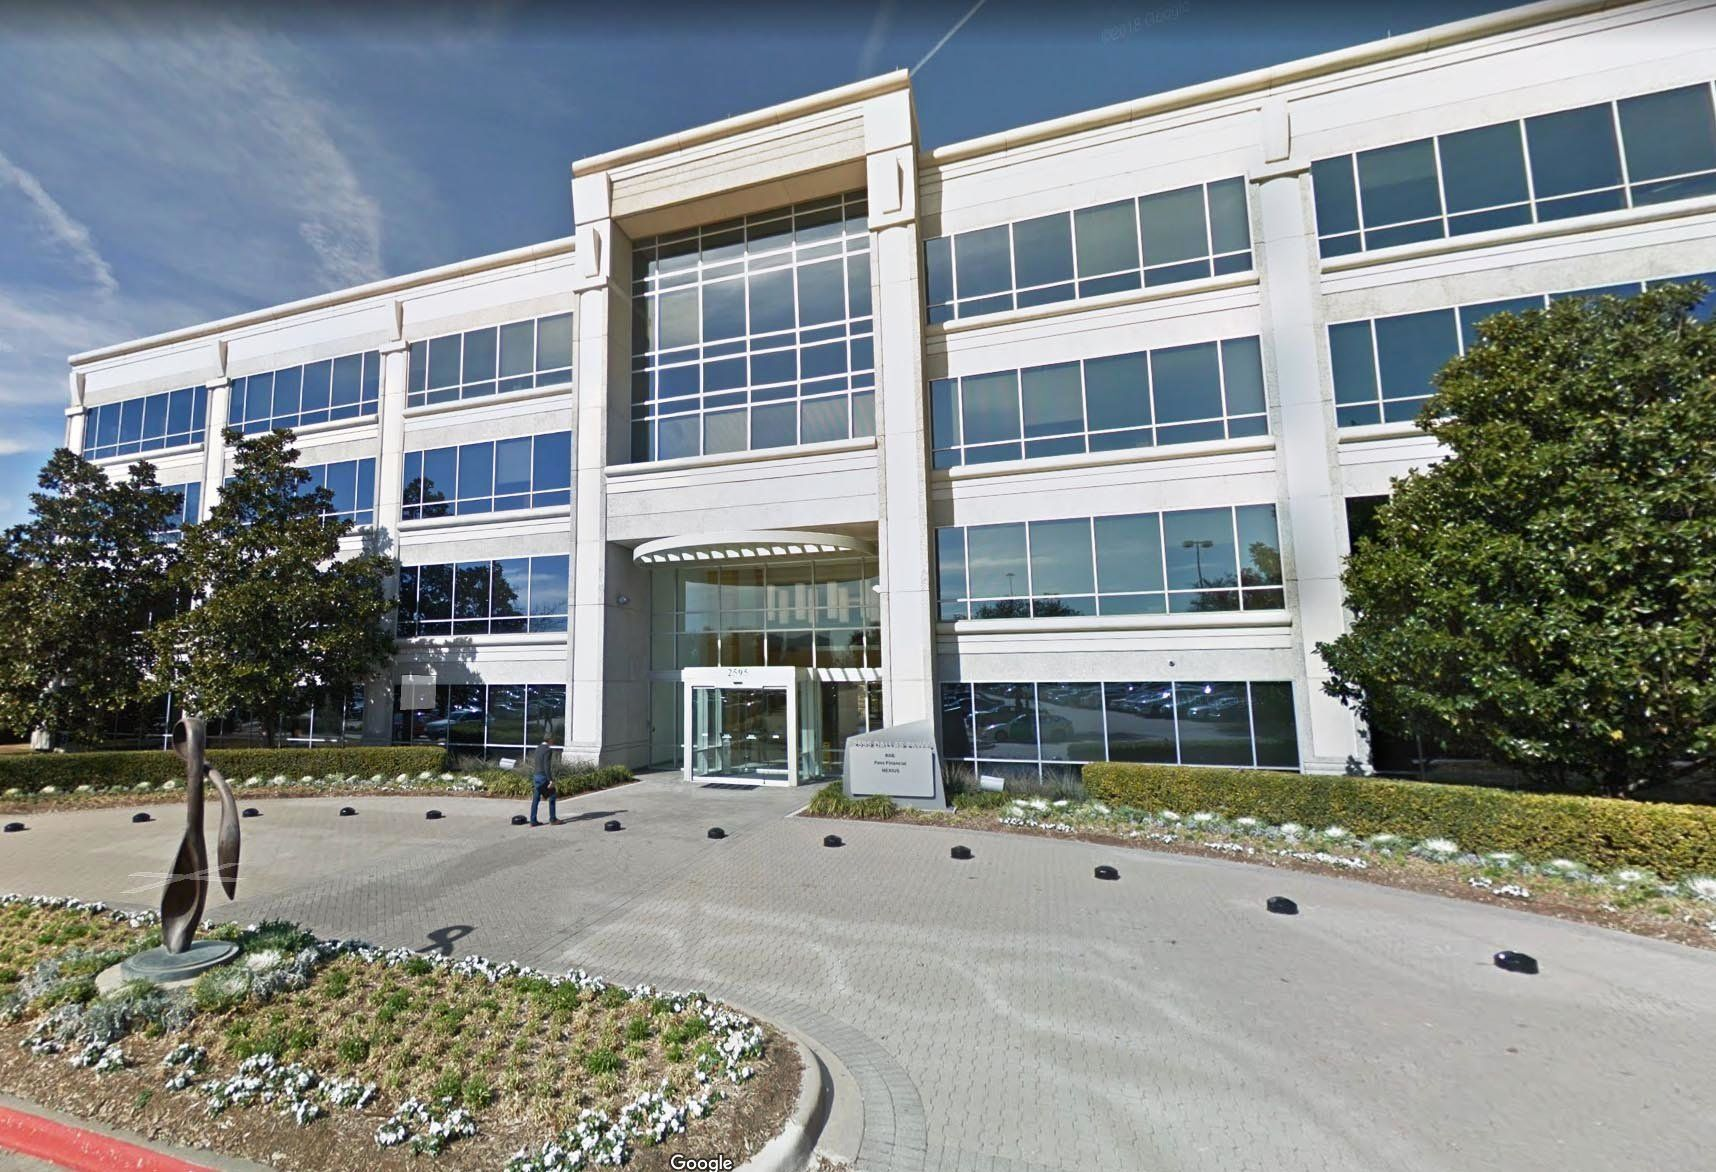 A Google street view of Novus Health Services in Frisco, Texas.